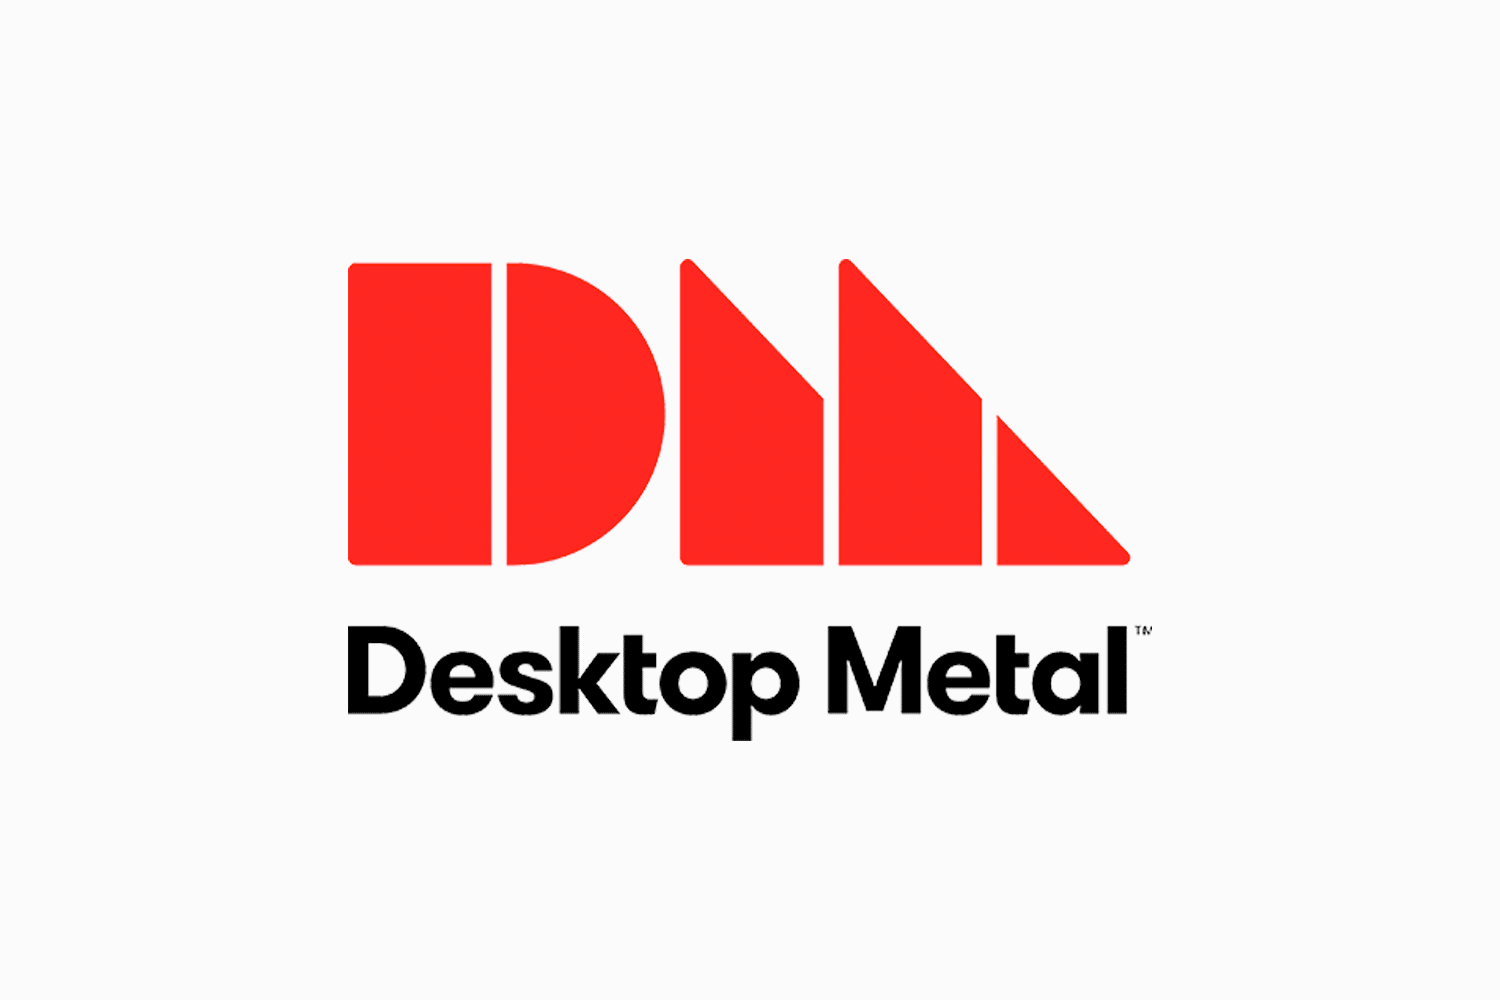 Image for article The strong impact of Desktop Metal